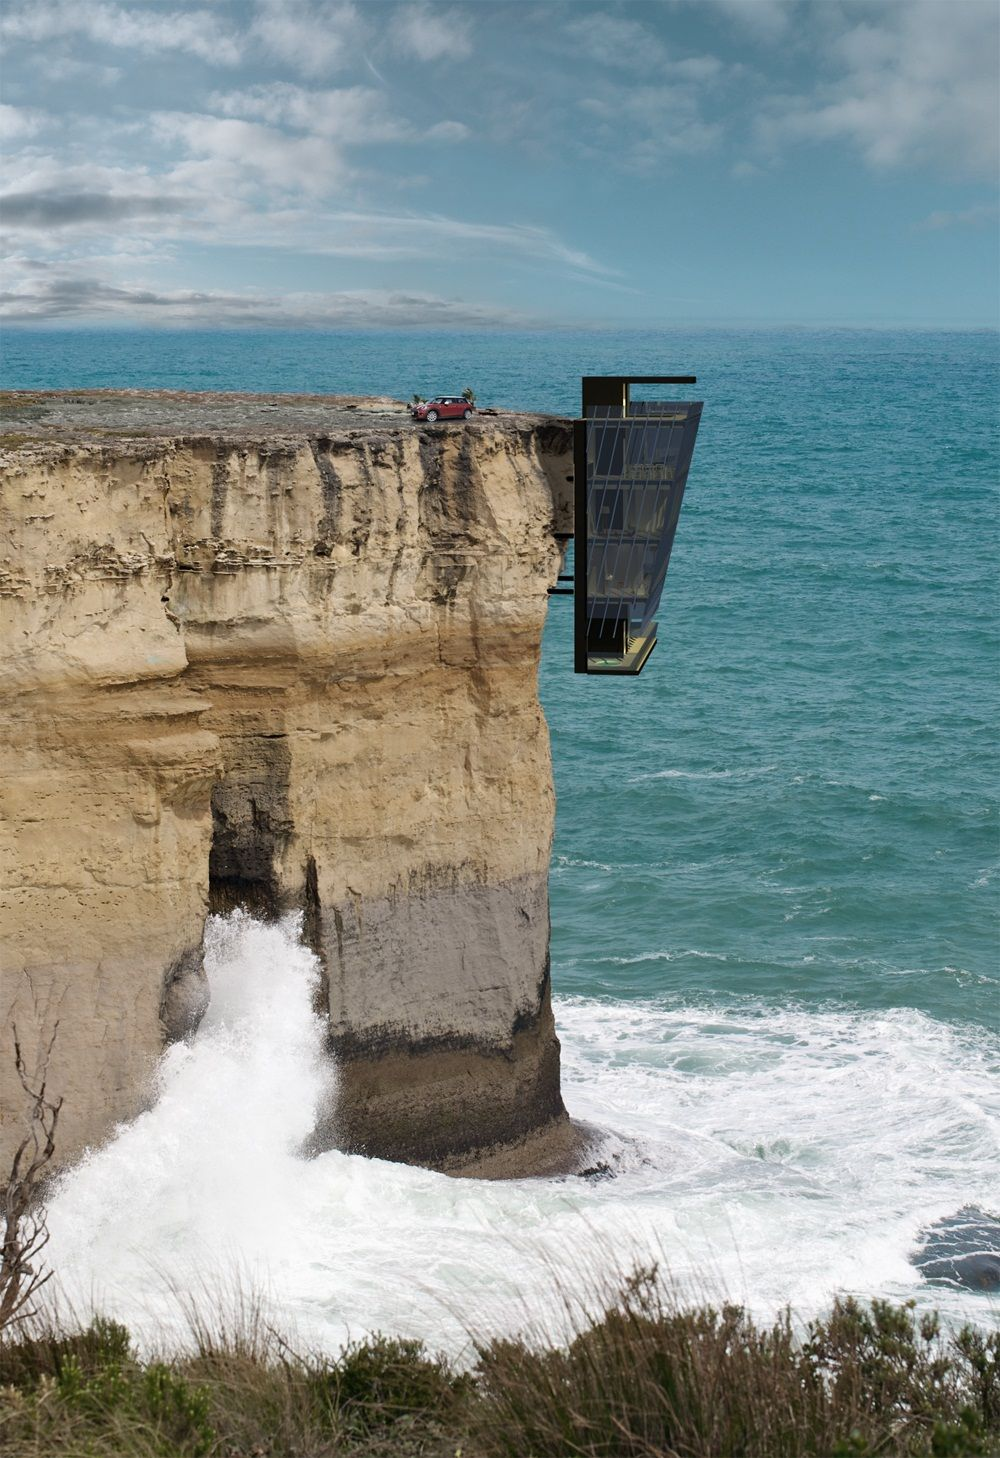 Cliff House By Modscape Literally Takes A Leap Of Faith In Their - This architects stunning concept home hangs from a cliffside in iceland